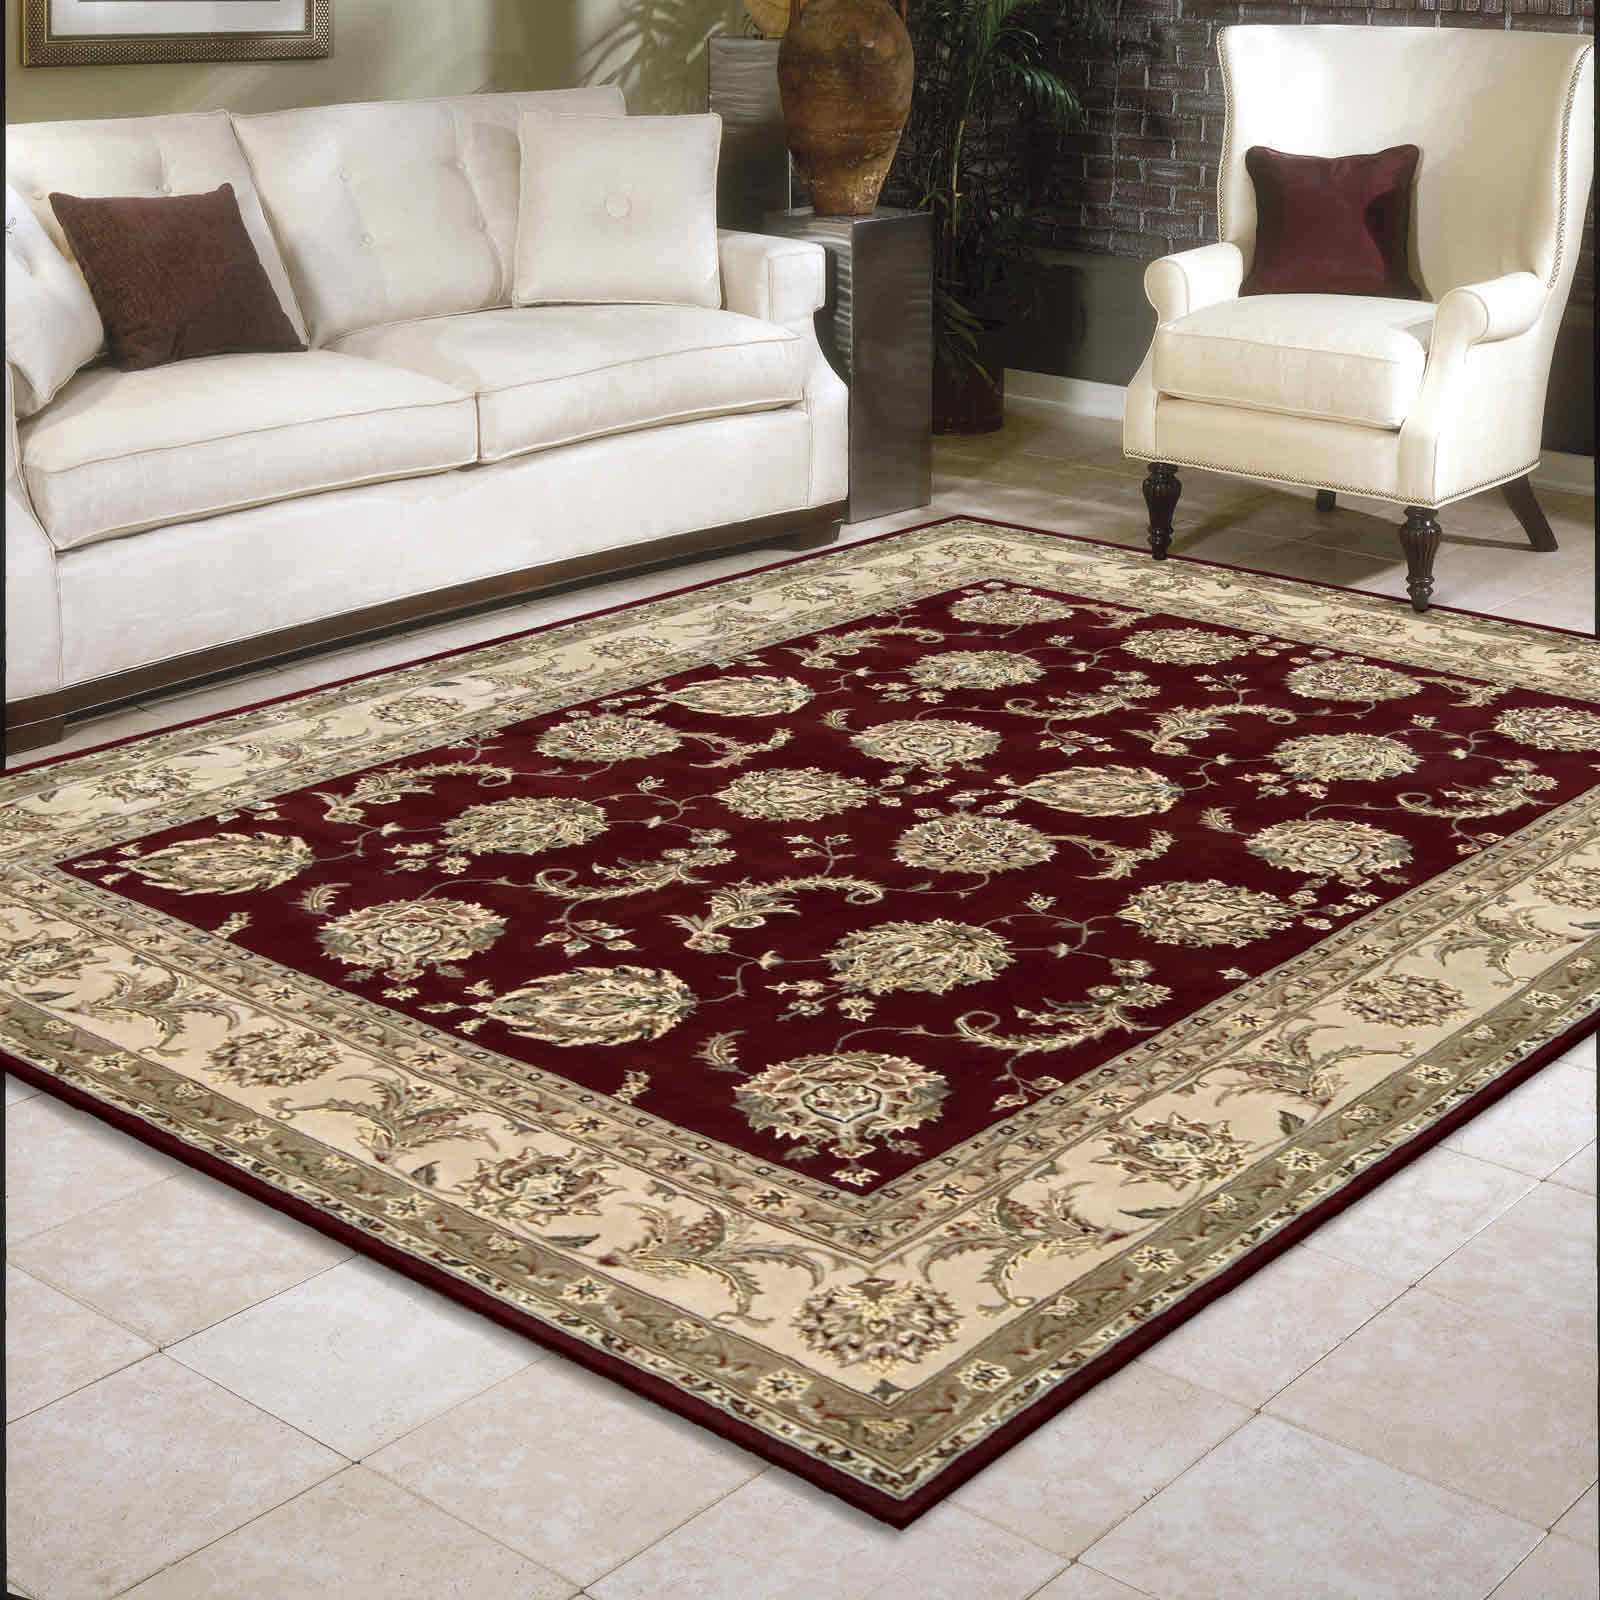 Nourison 2000 Rugs 2022 in Lacquer